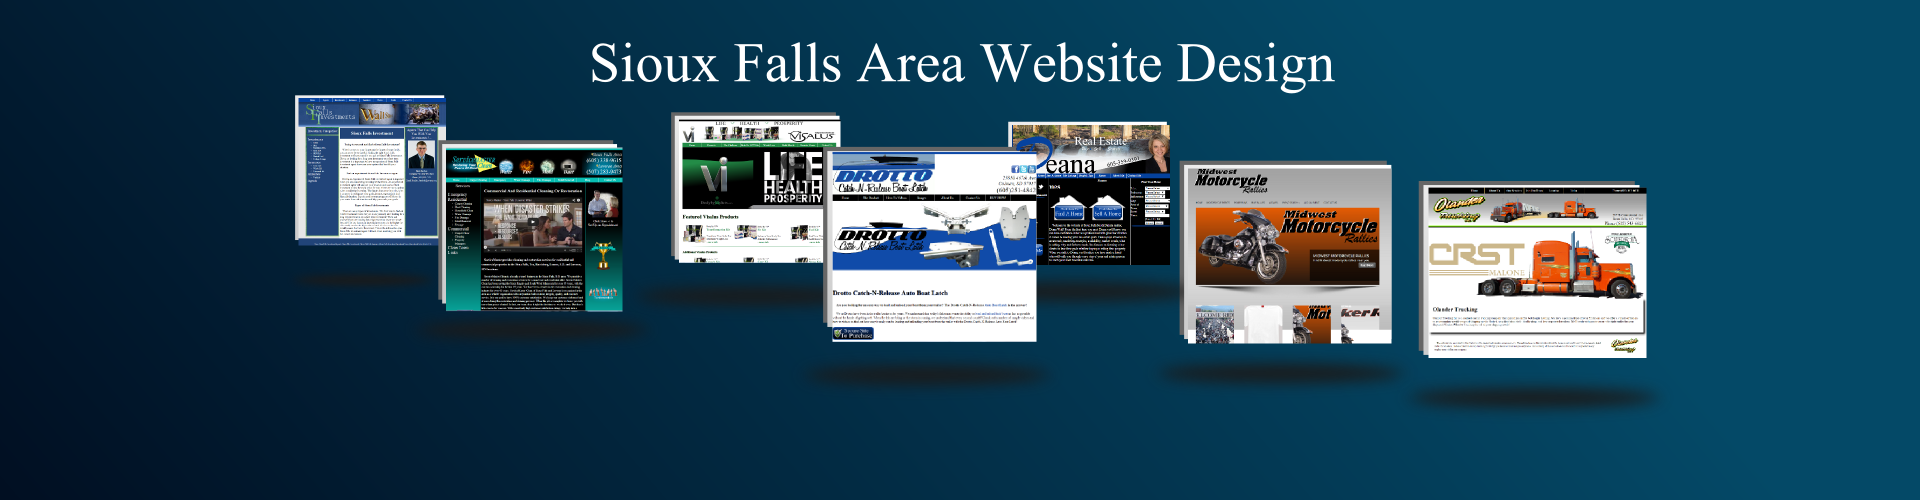 Sioux-Falls-website-design-SFWebguy